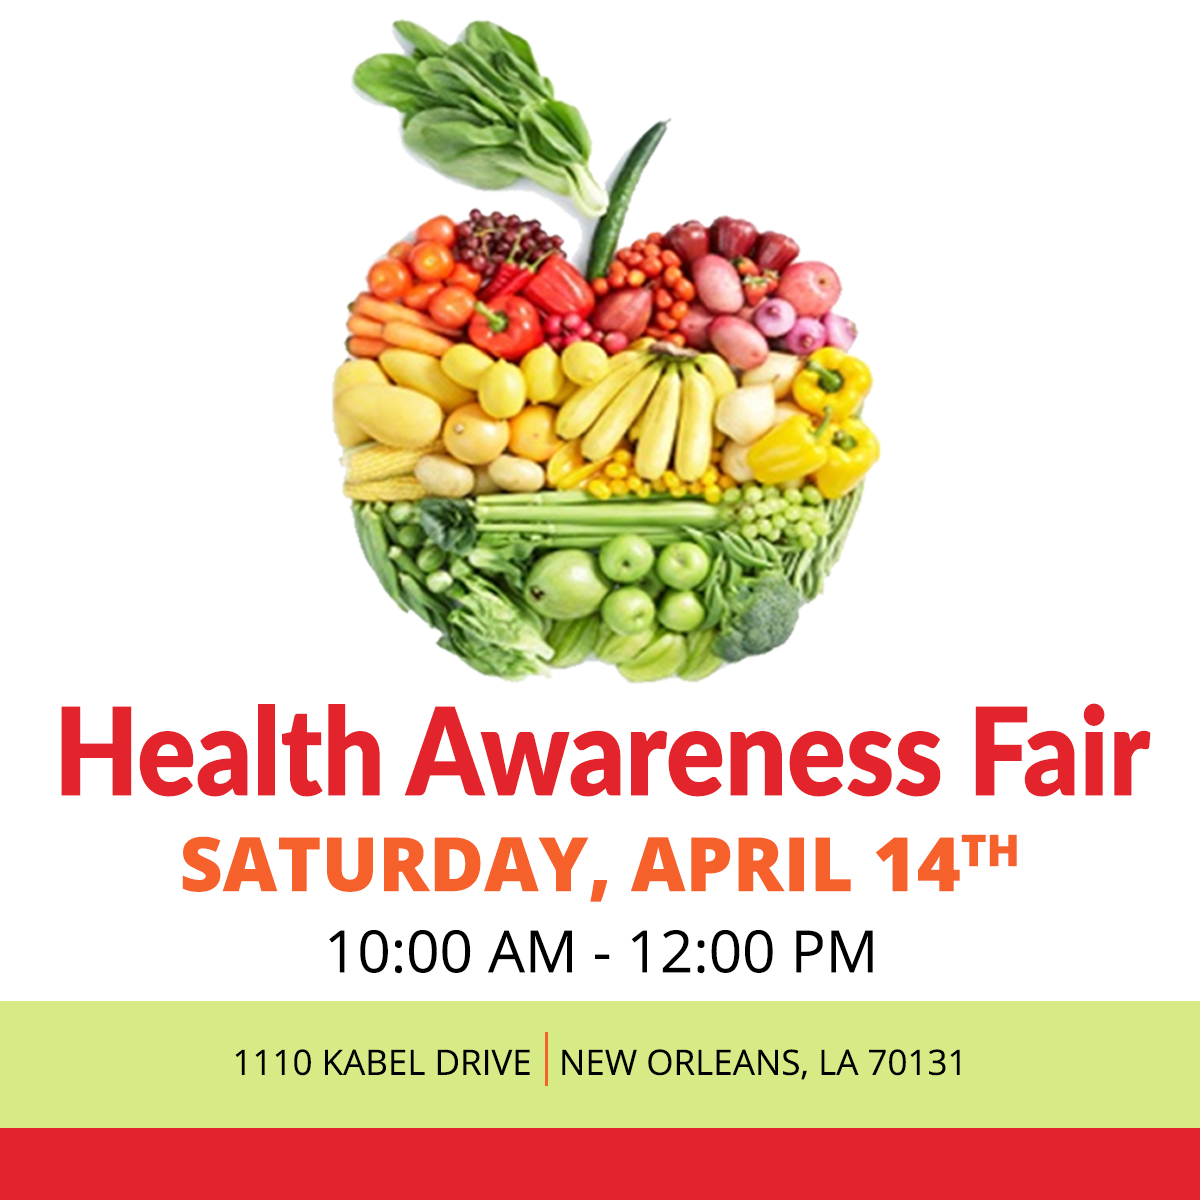 cca-health-awareness-fair-invite-card-back.jpg